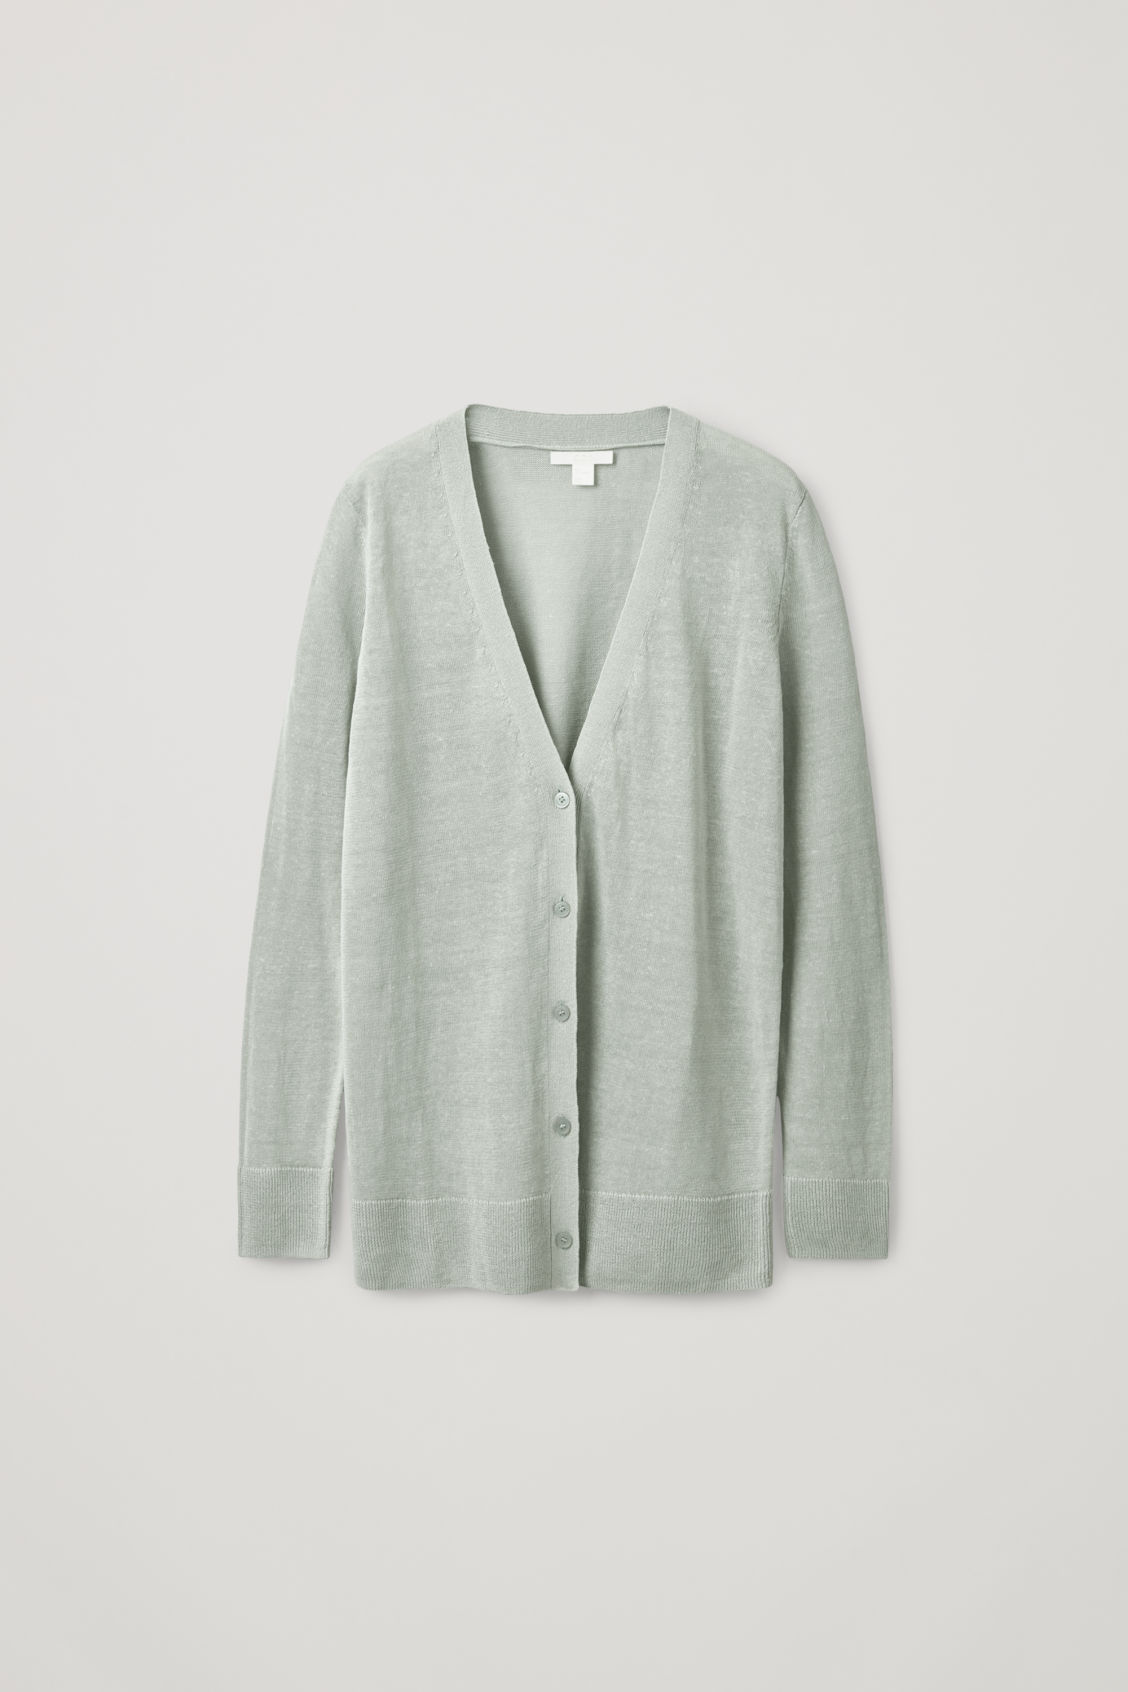 Cos Linen-mulberry Silk Cardigan In Turquoise